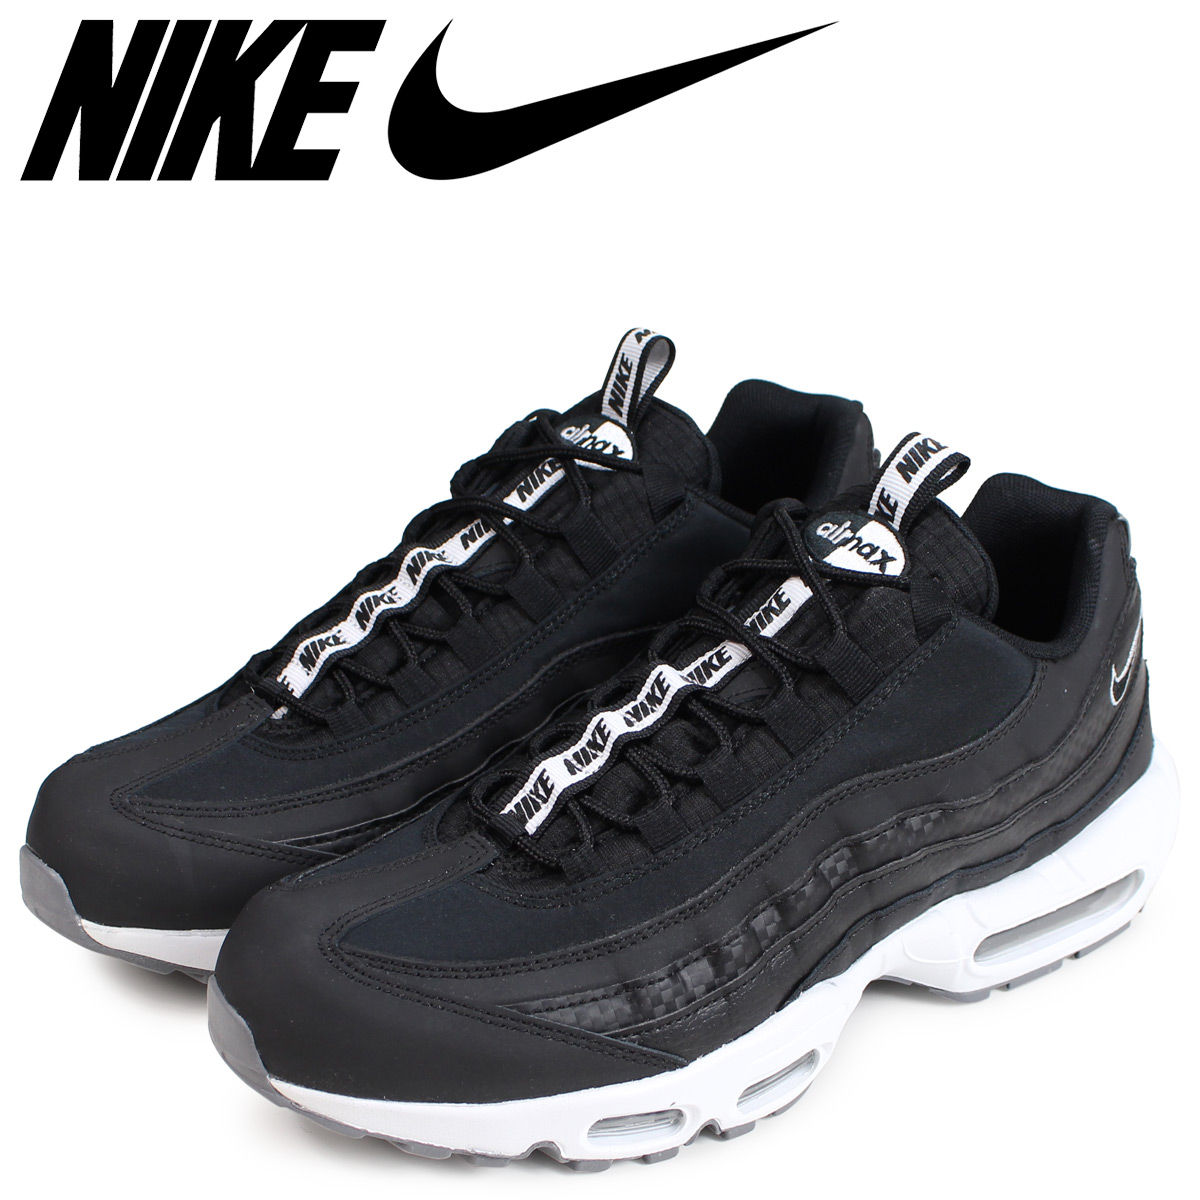 nike air max 95 se black and white